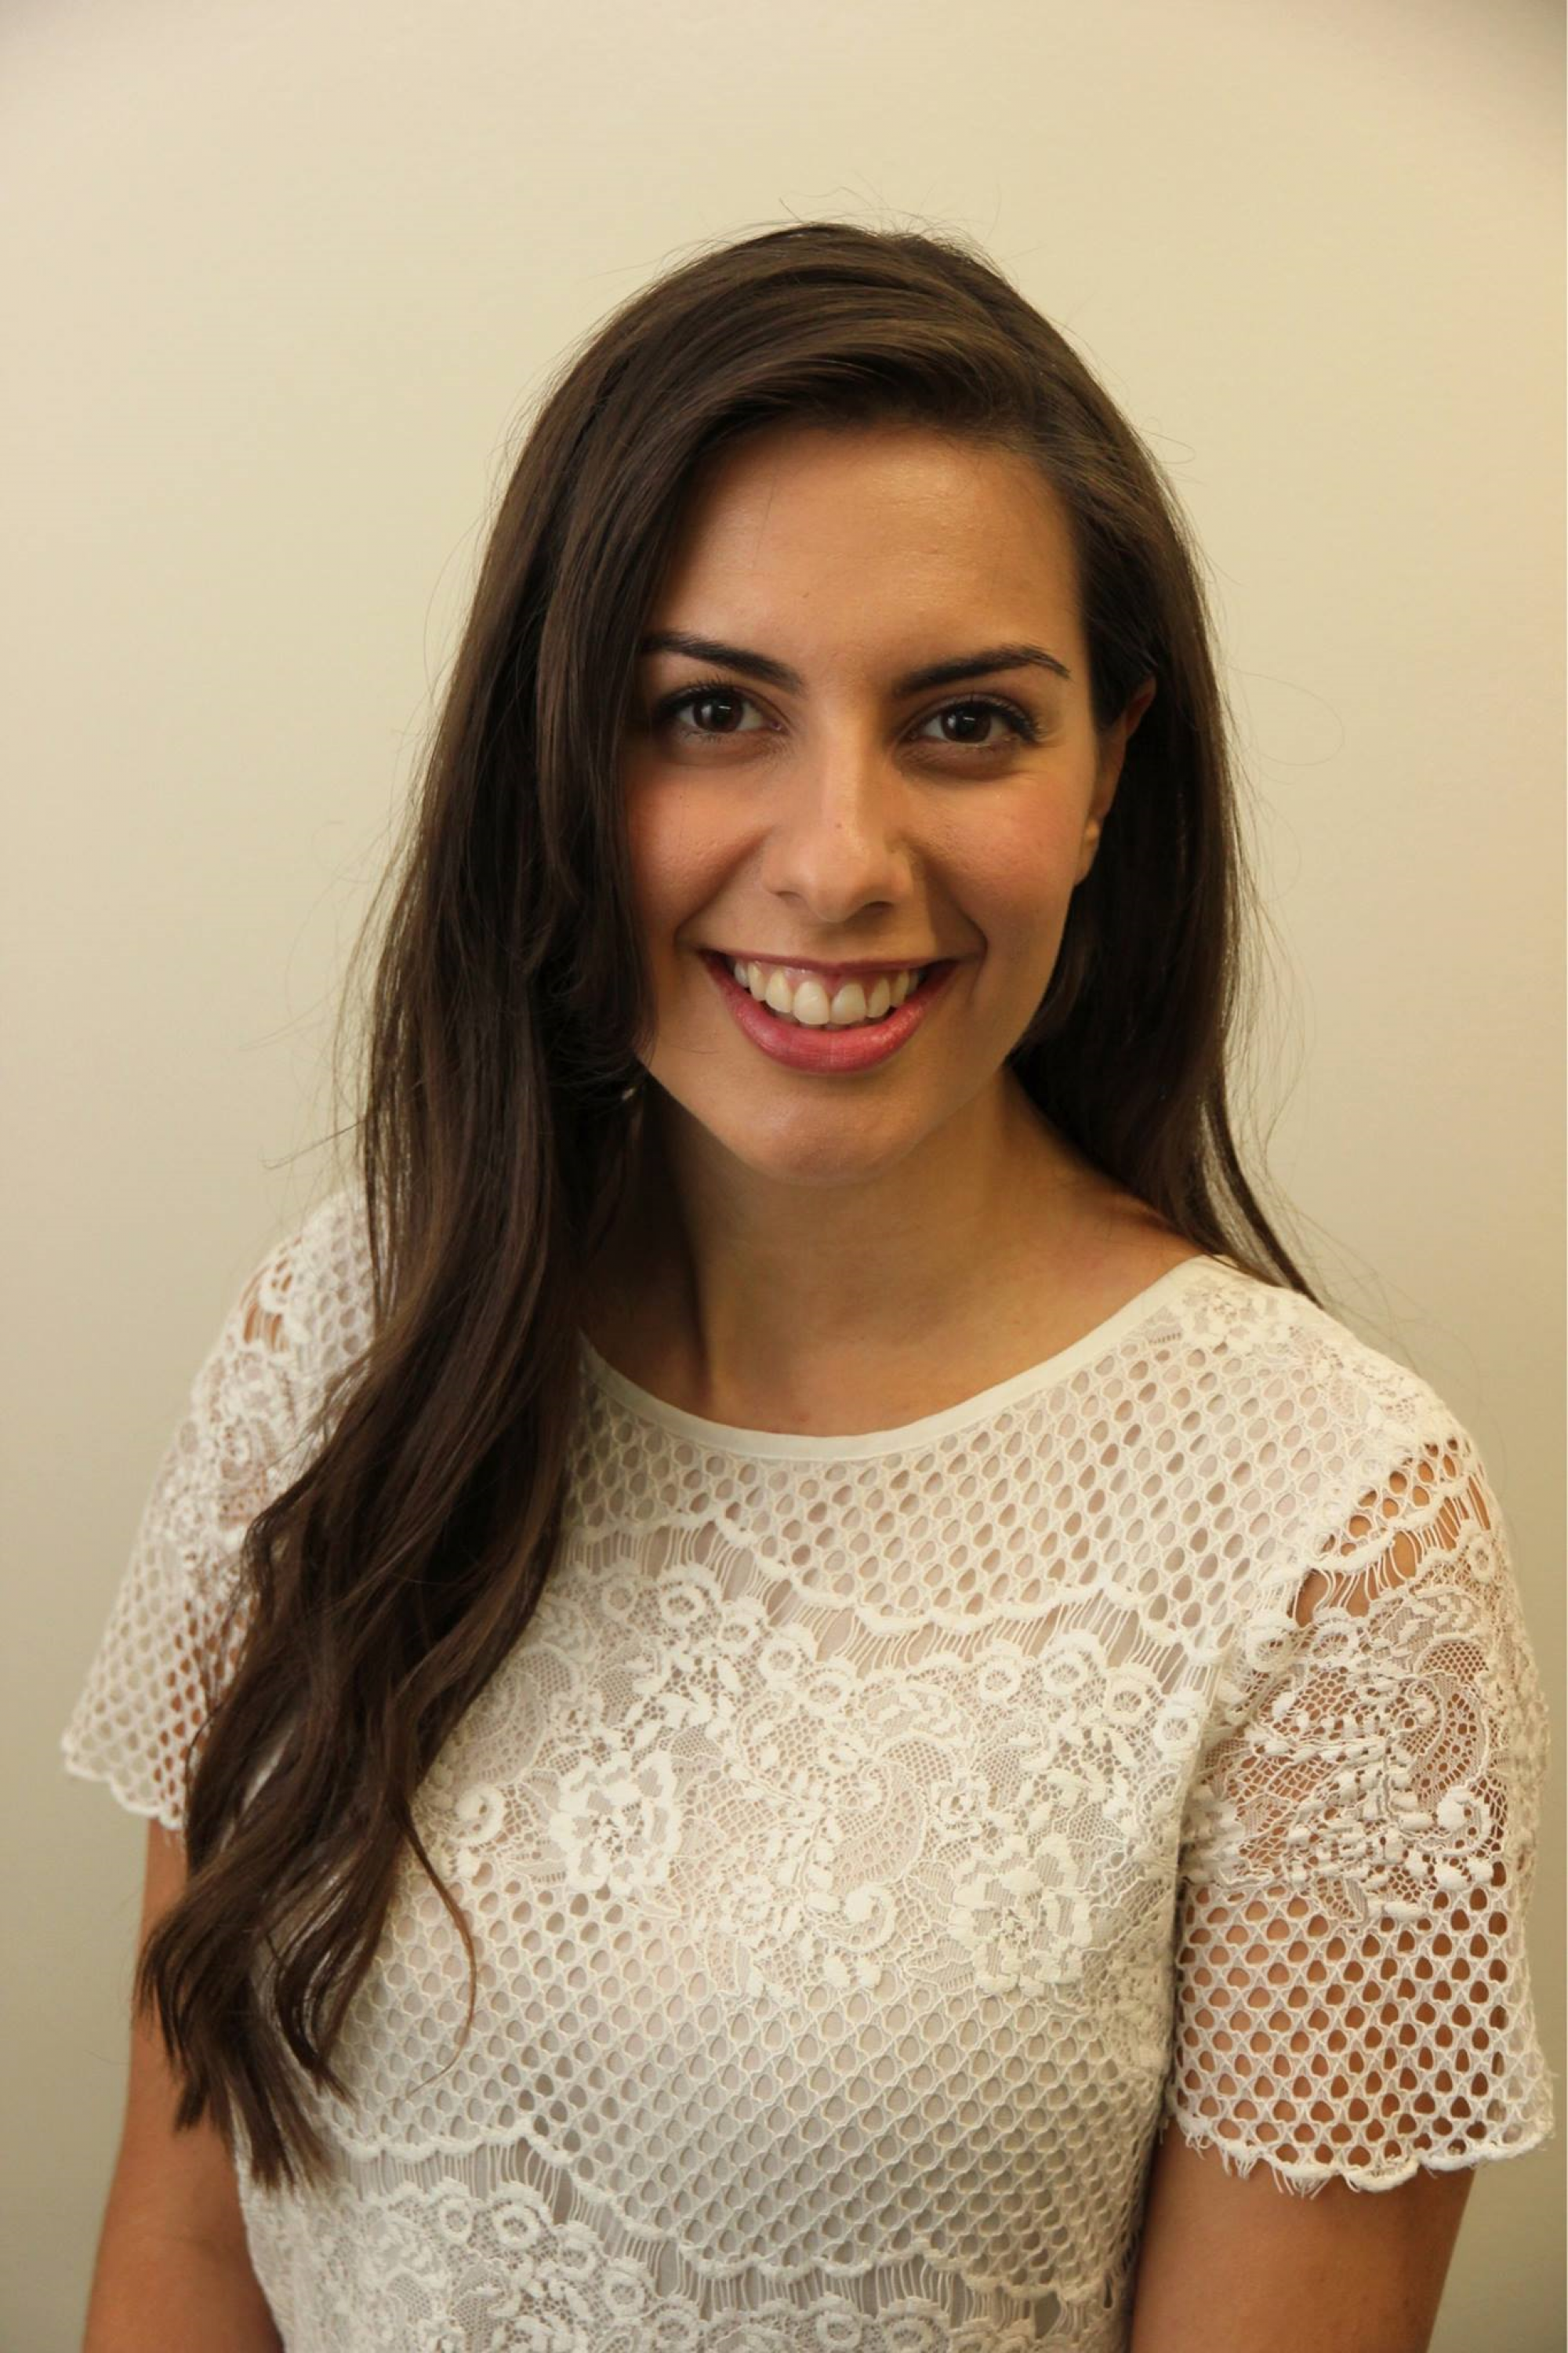 Atina Manvelian is a doctoral student studying clinical psychology with a focus on how romantic relationships form and change over time, how people cope with marital distress and divorce, and how we can use the power of these critical relationships to imp